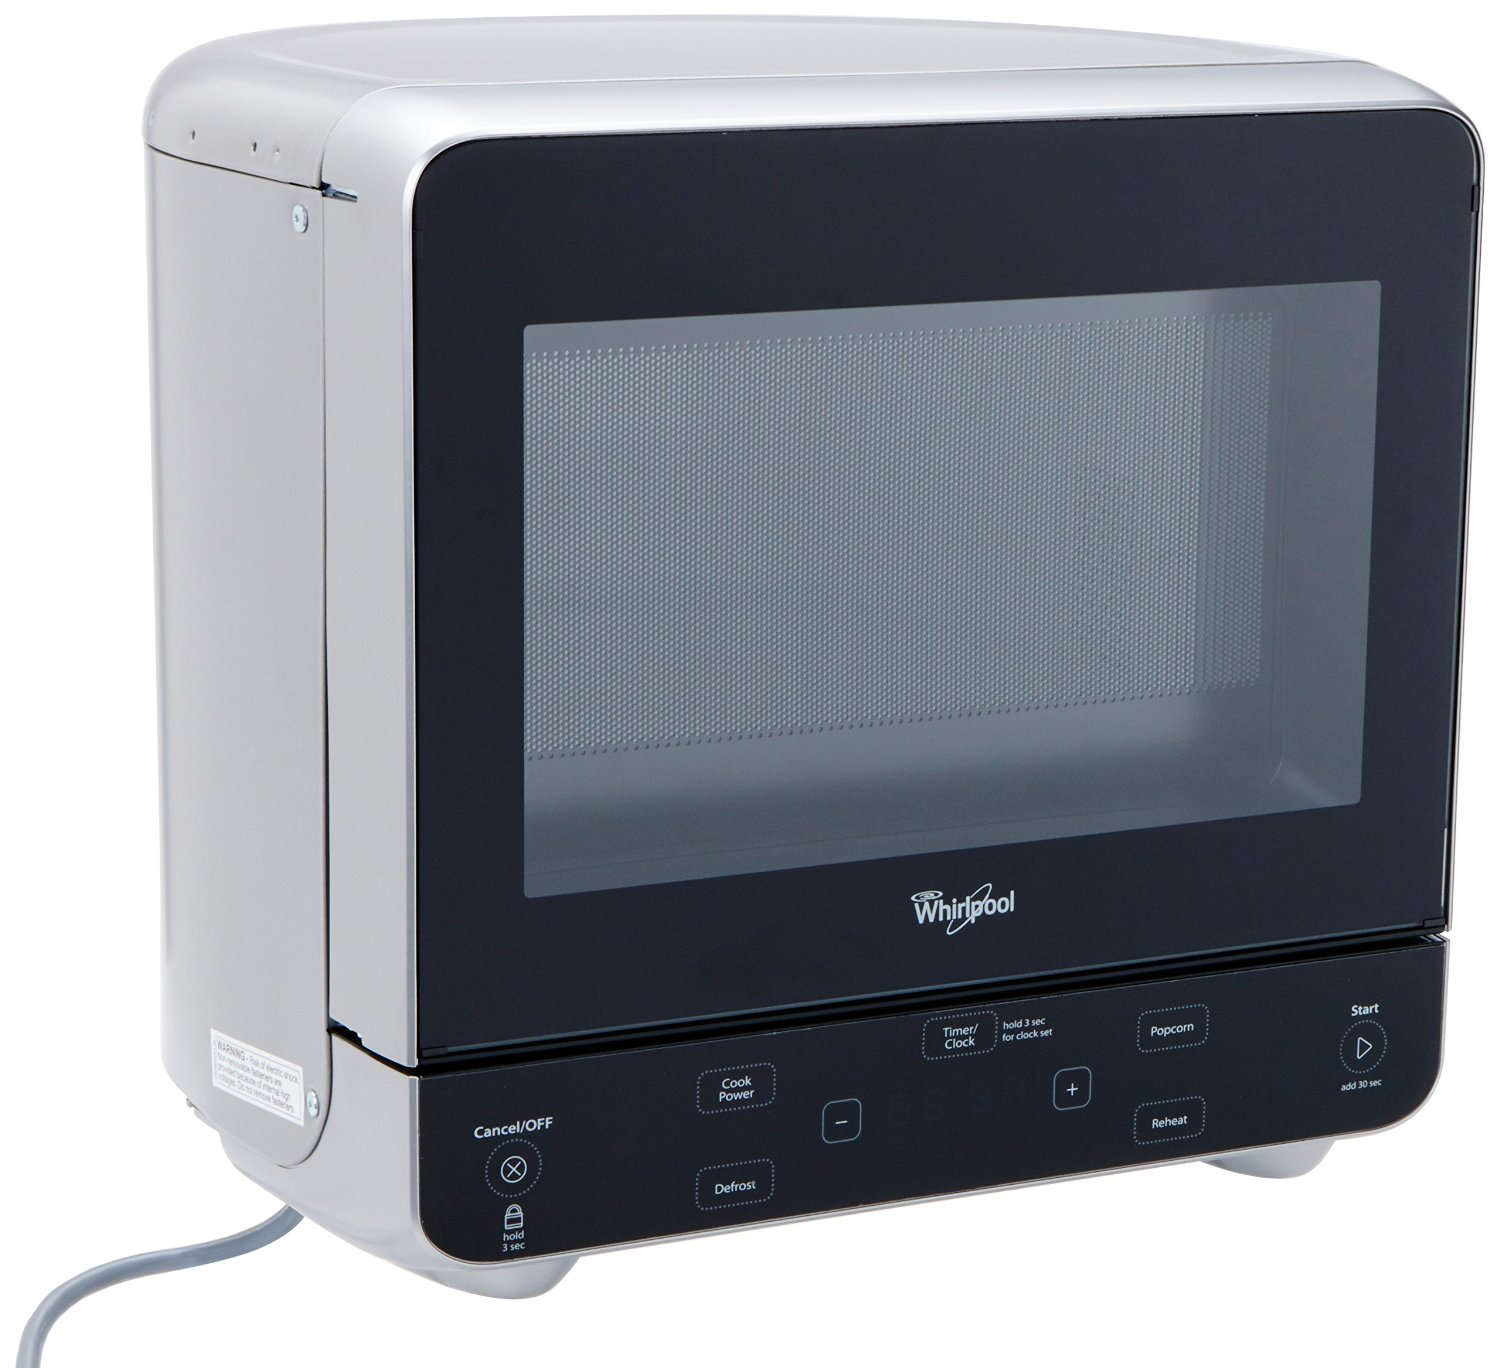 Revealed Best Small Microwave Oven For Office Dorm And